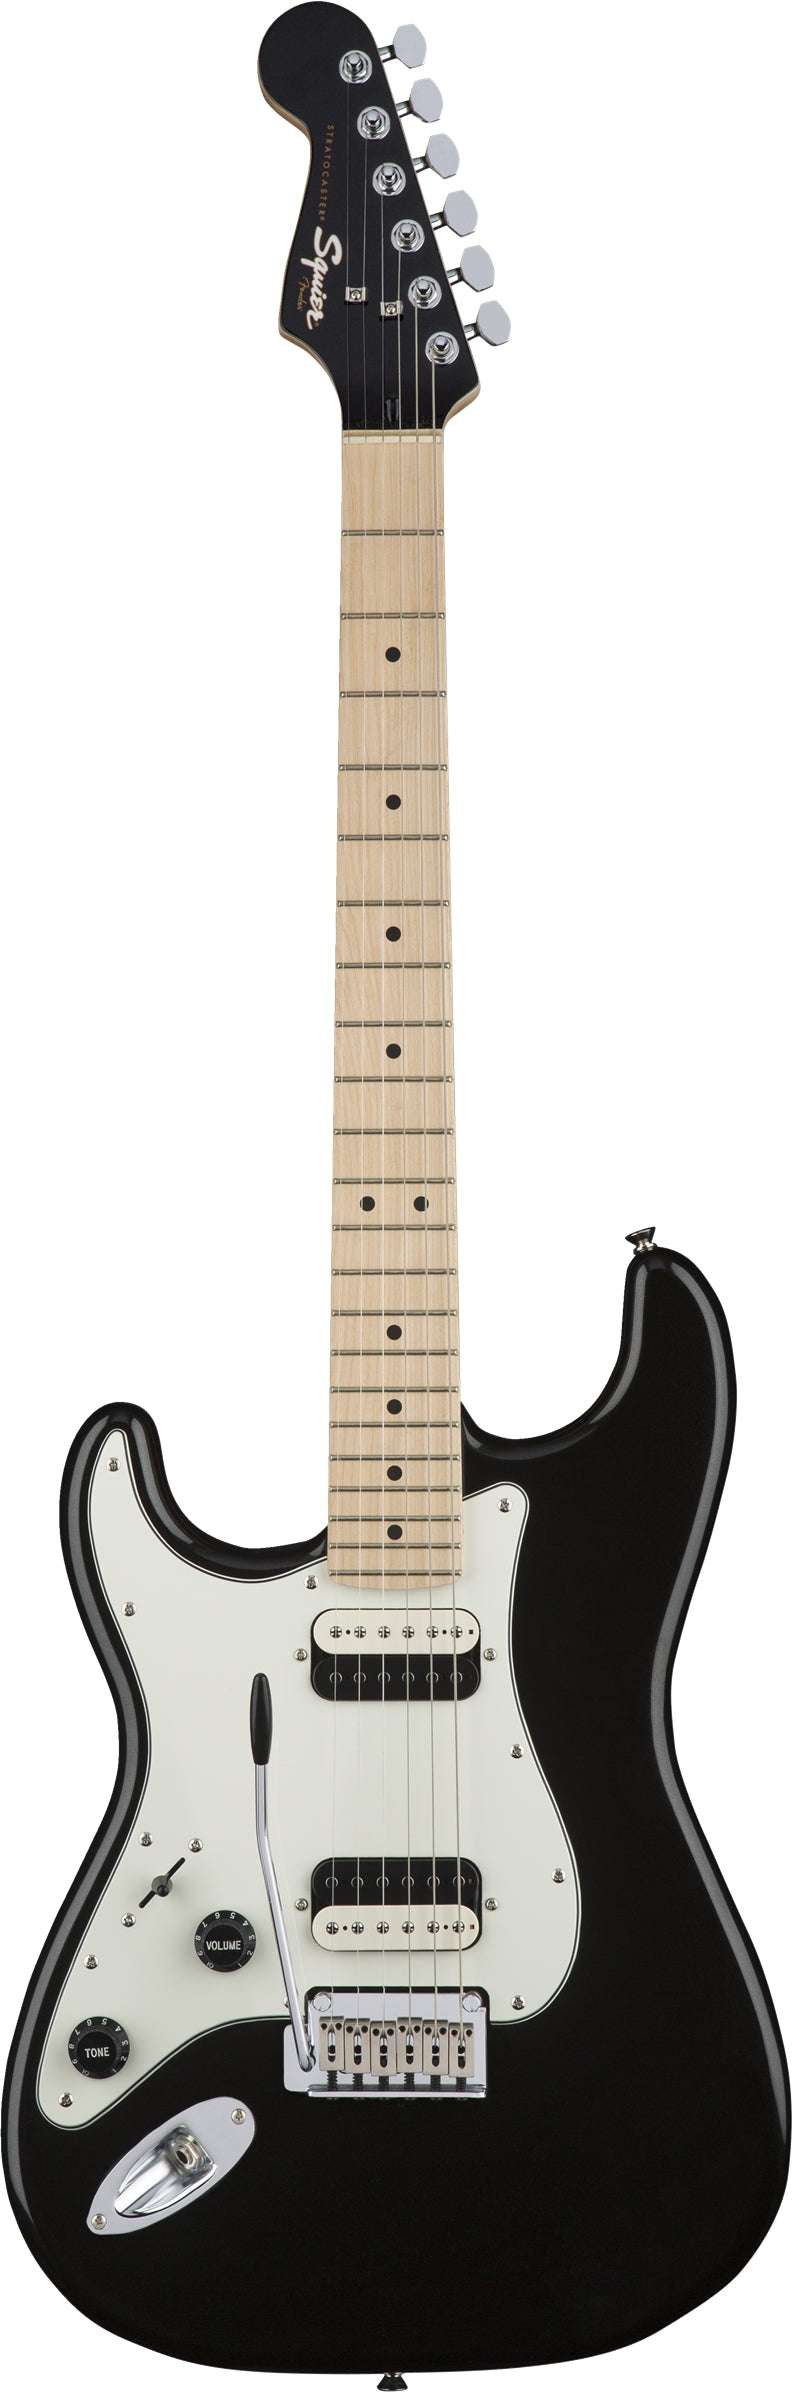 Squier Left Handed Contemporary Stratocaster HH - Black Metallic